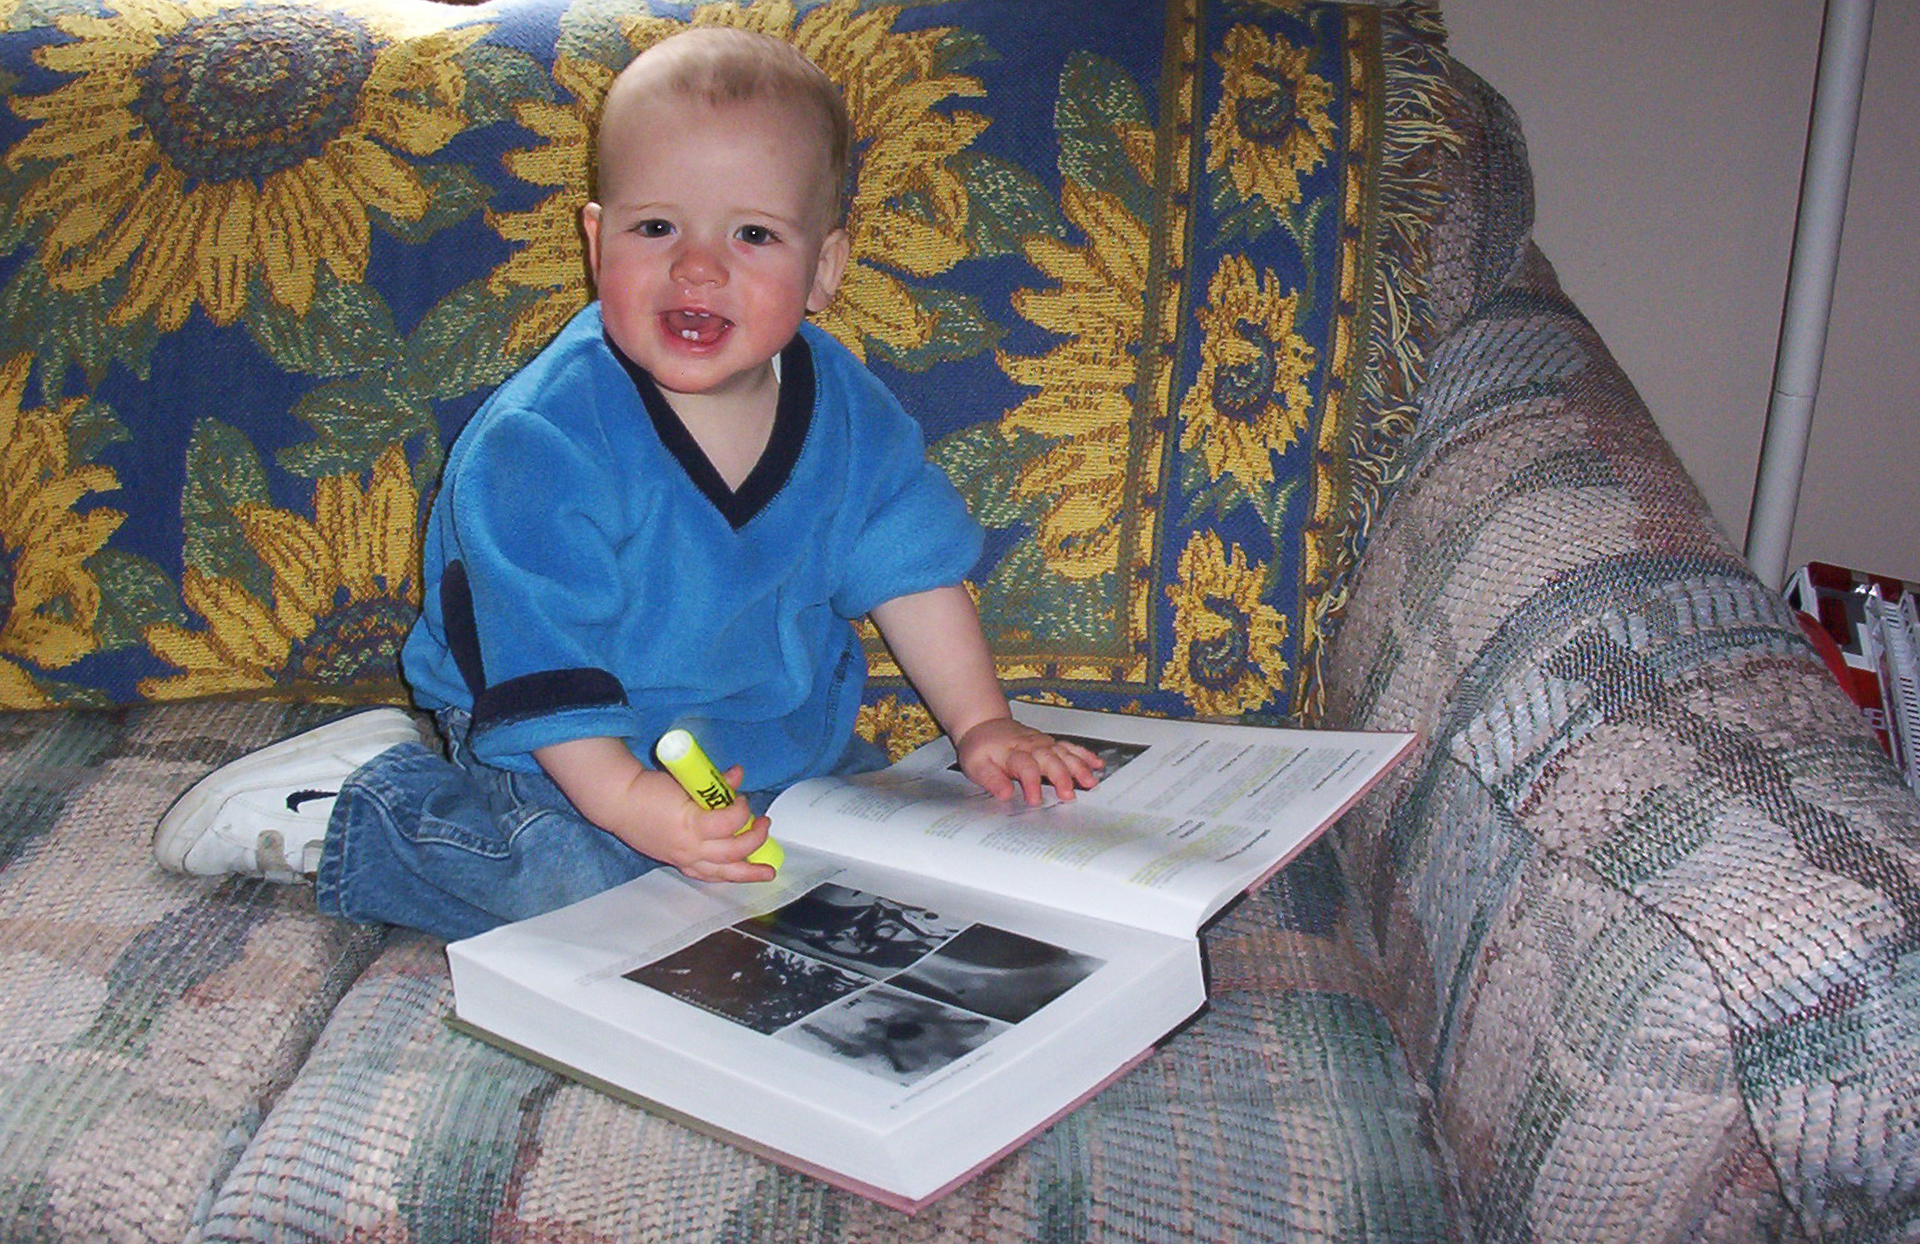 A baby sits on a couch with a highlighter and textbook.